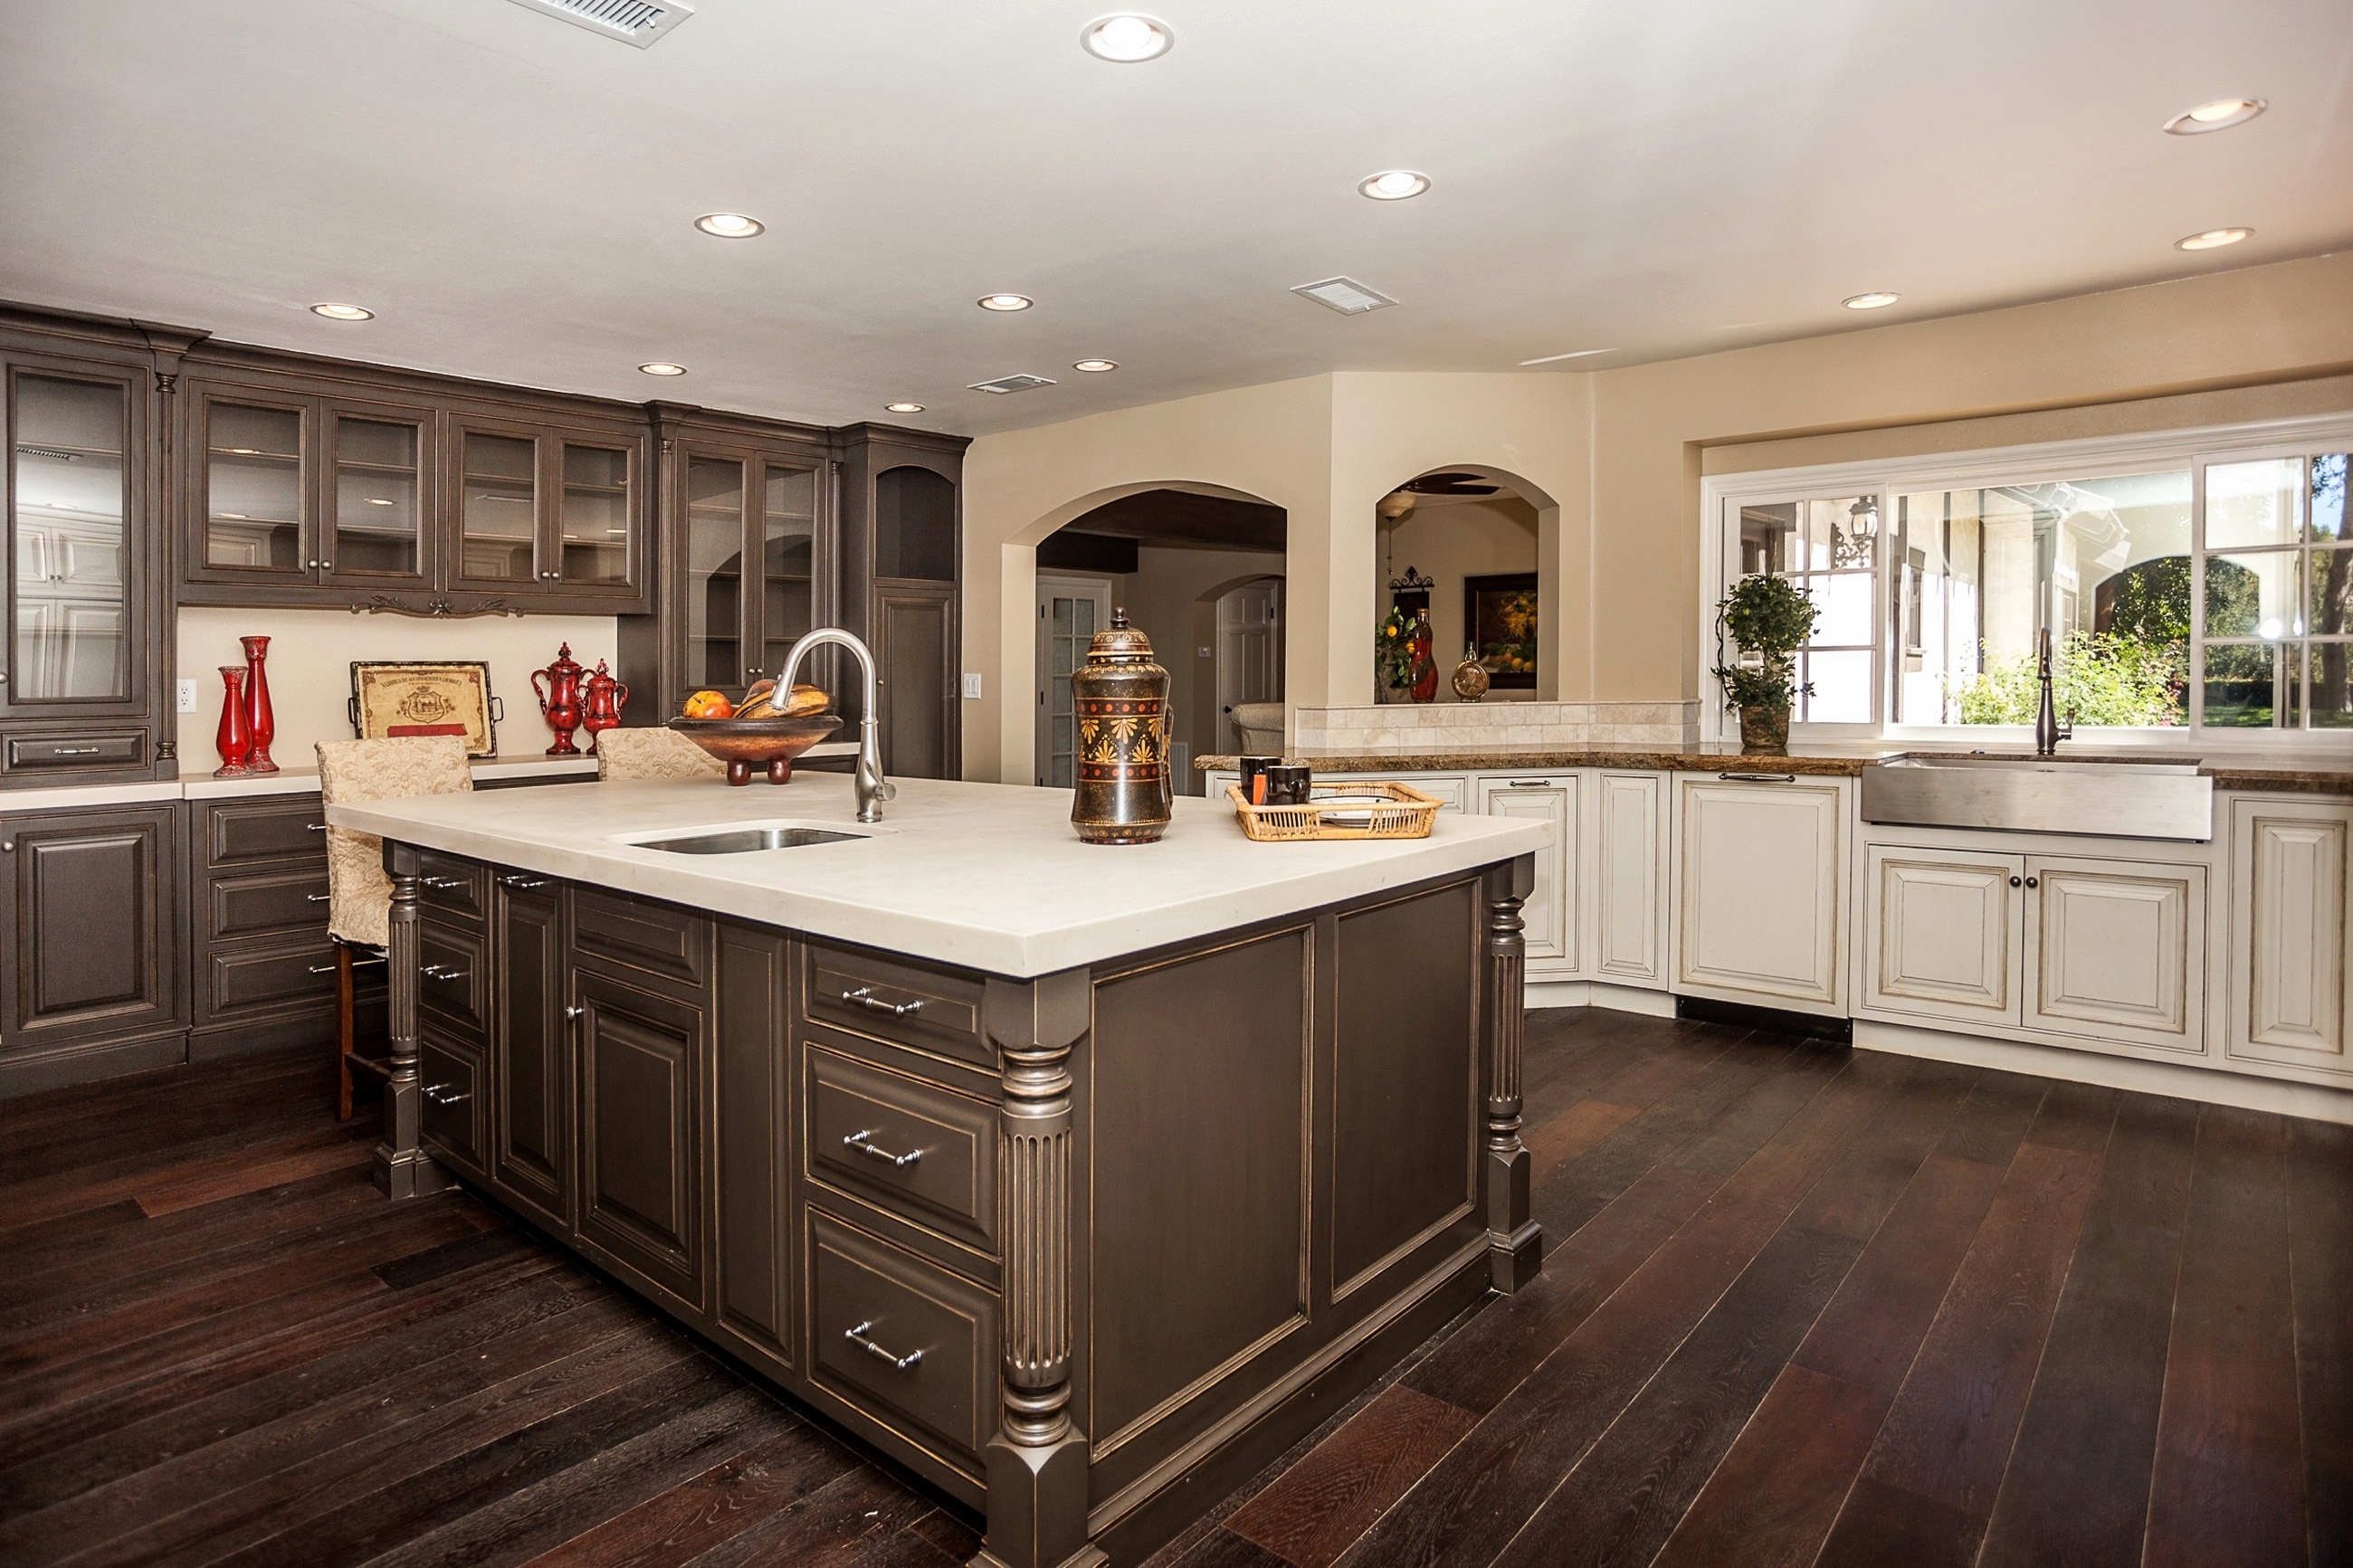 grey hardwood floors with white cabinets of 41 collection kitchen colors with brown cabinets image living room for light colored kitchen cabinets best s od double door refrigerator fully furnished kitchens image